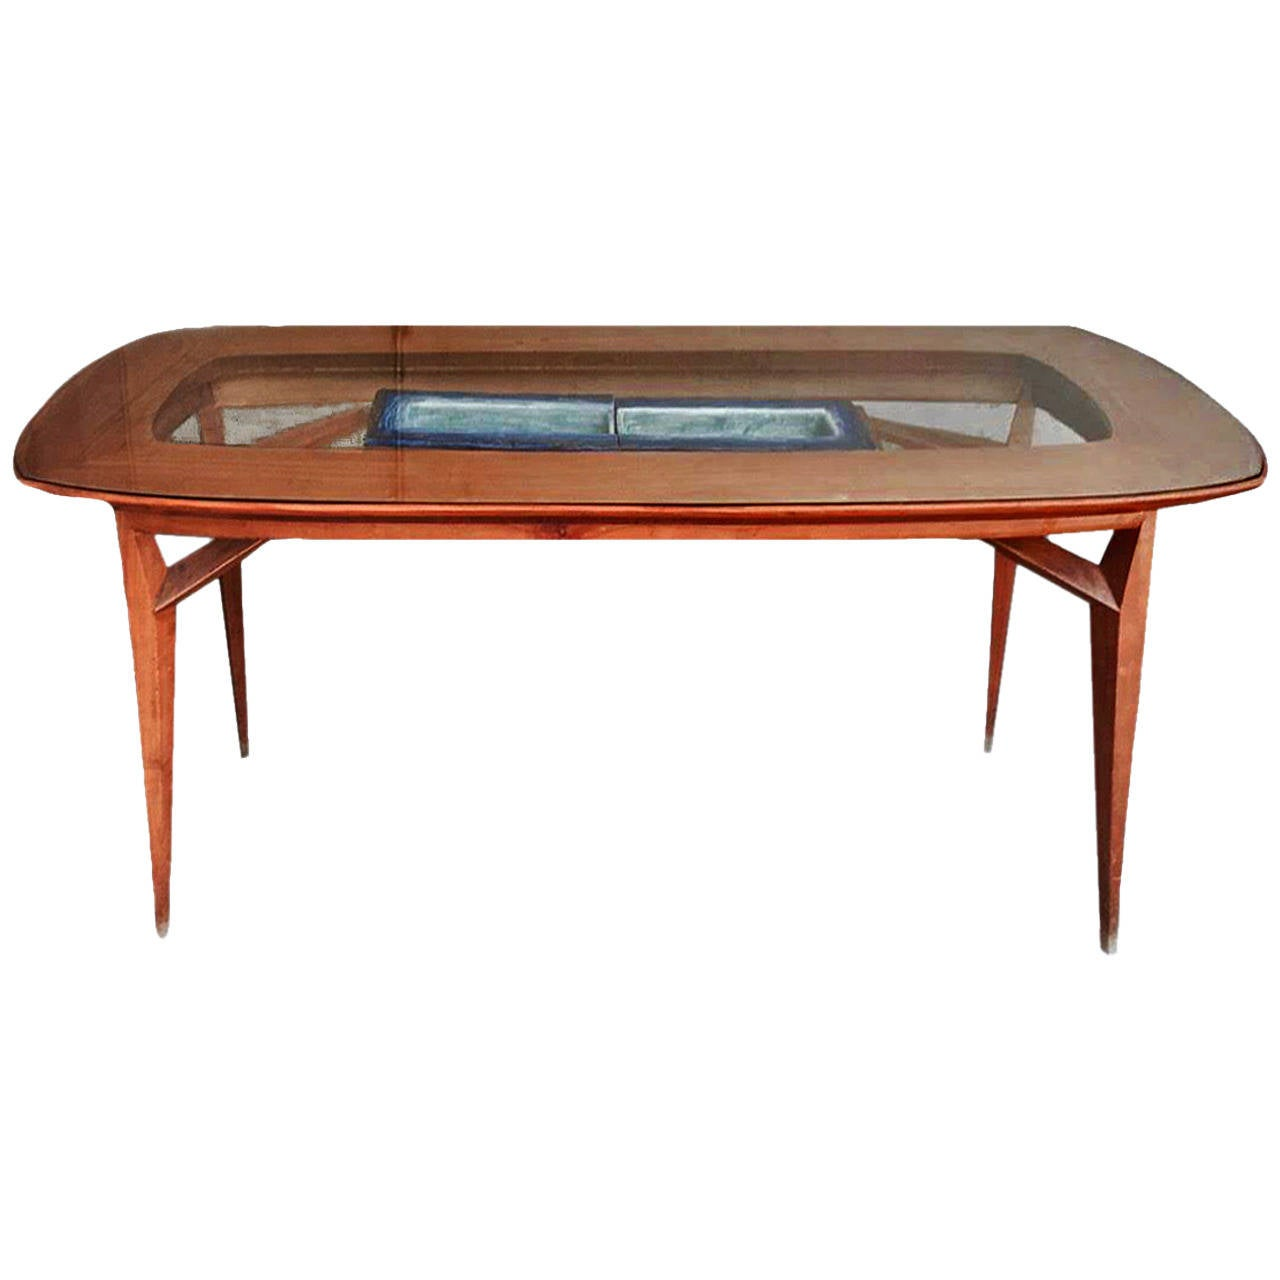 Beautiful dining table design vittorio dassi 1950 for for Beauty table for sale